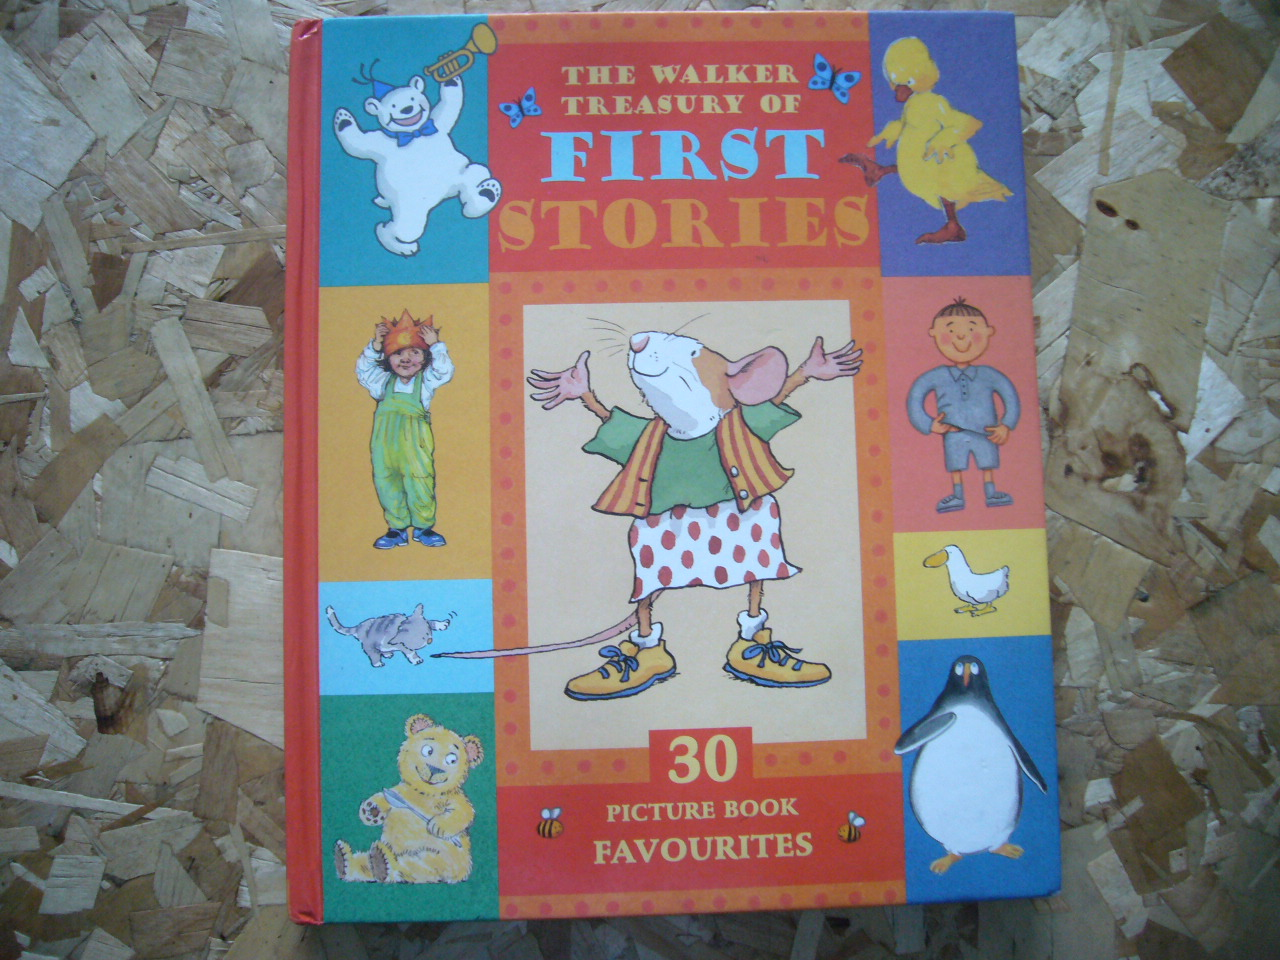 The Walker Treasury of FIRST STORIES (30 Picture Book Favourites)